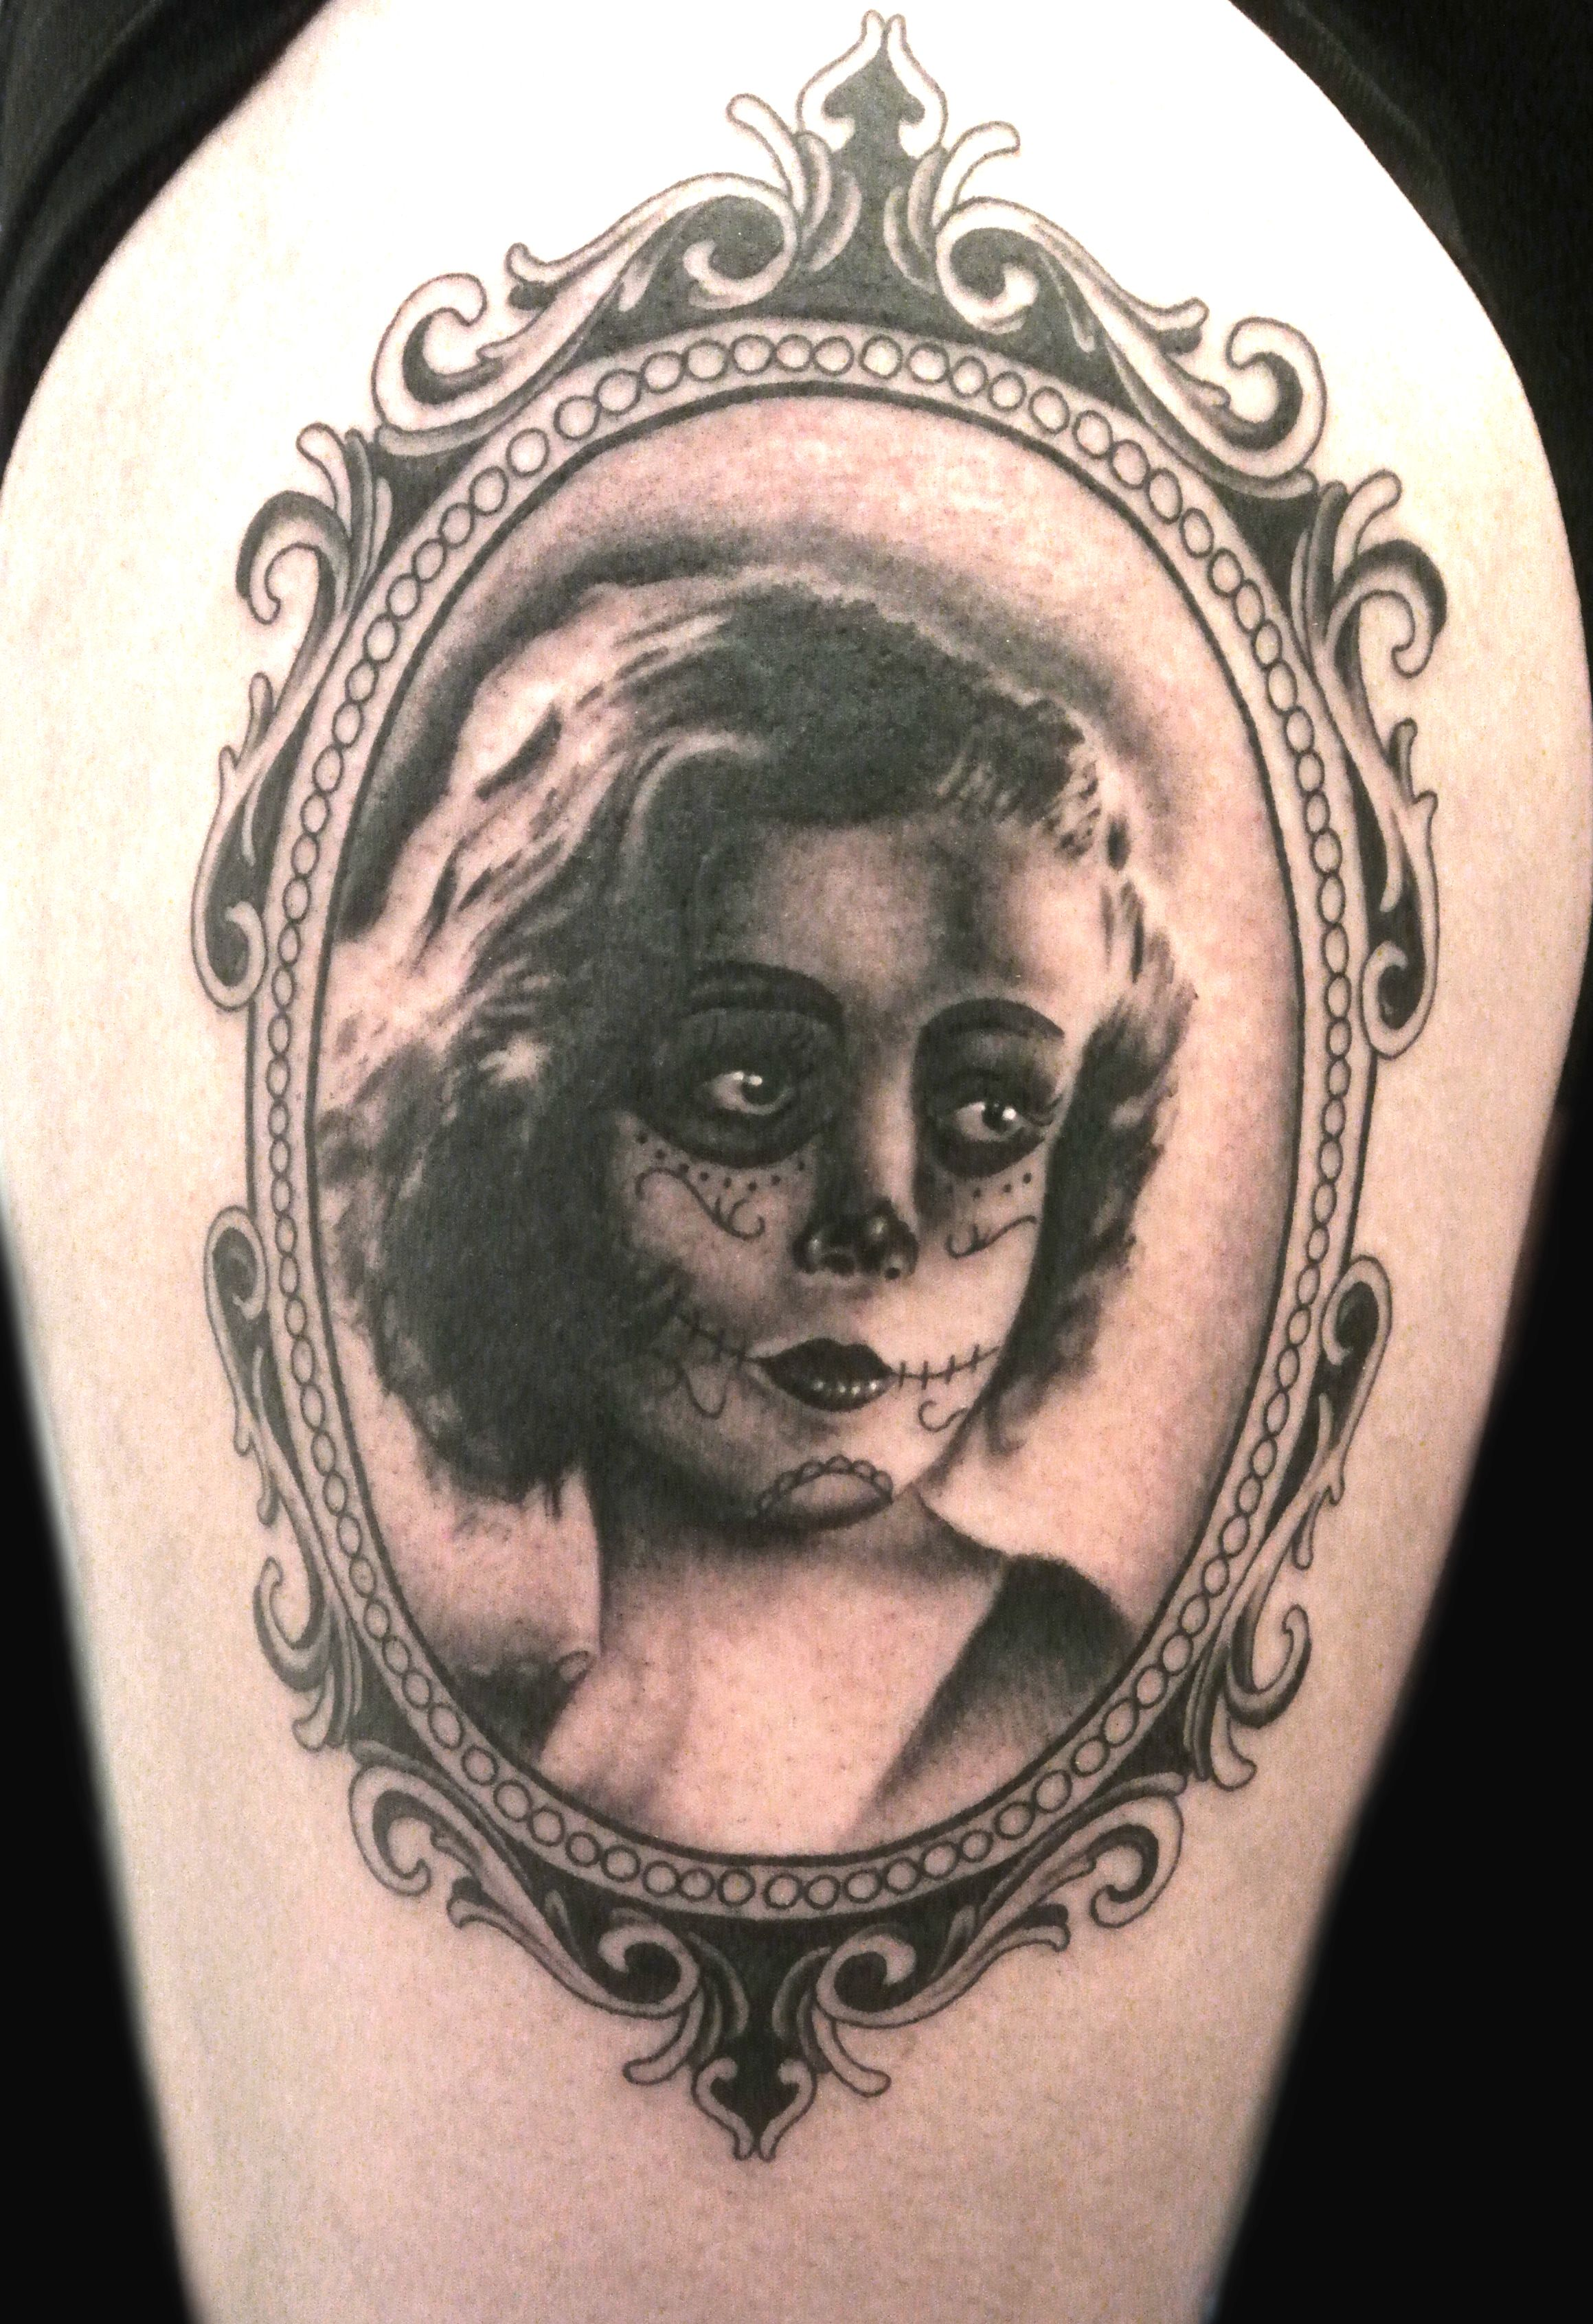 ornate frame tattoo simple ornate frame tattoo candy girl portrait in vintage by lou shaw ornate frame tattoo 450 best tattoos images on tatoos tattoo